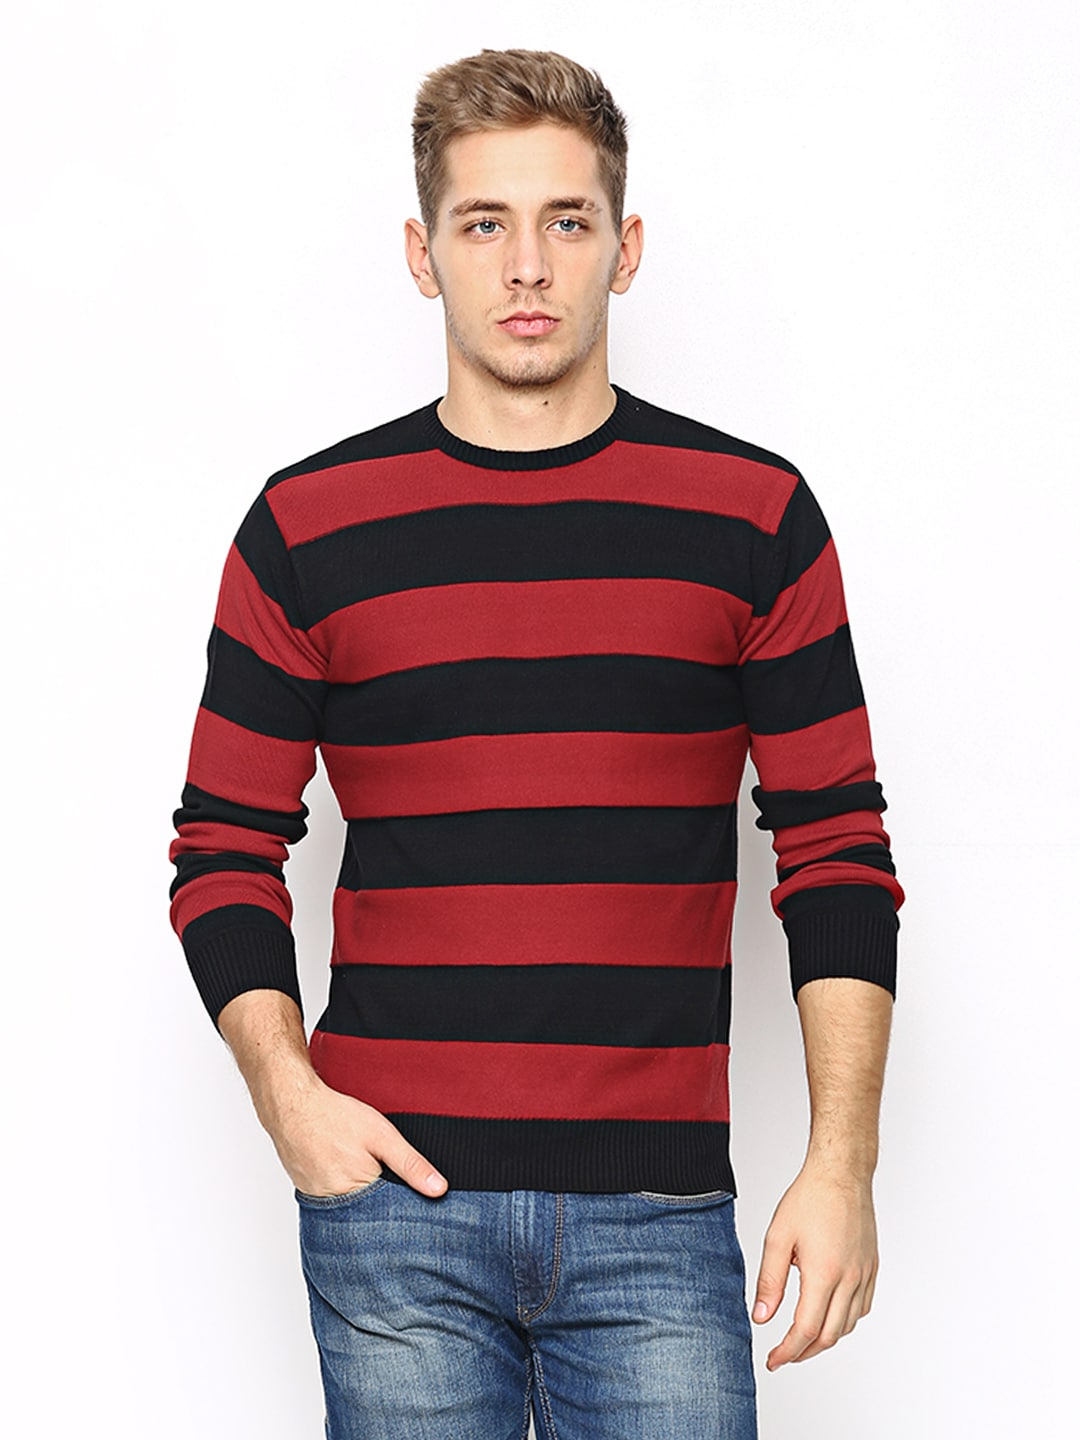 Black Red Striped Sweater - Cardigan With Buttons